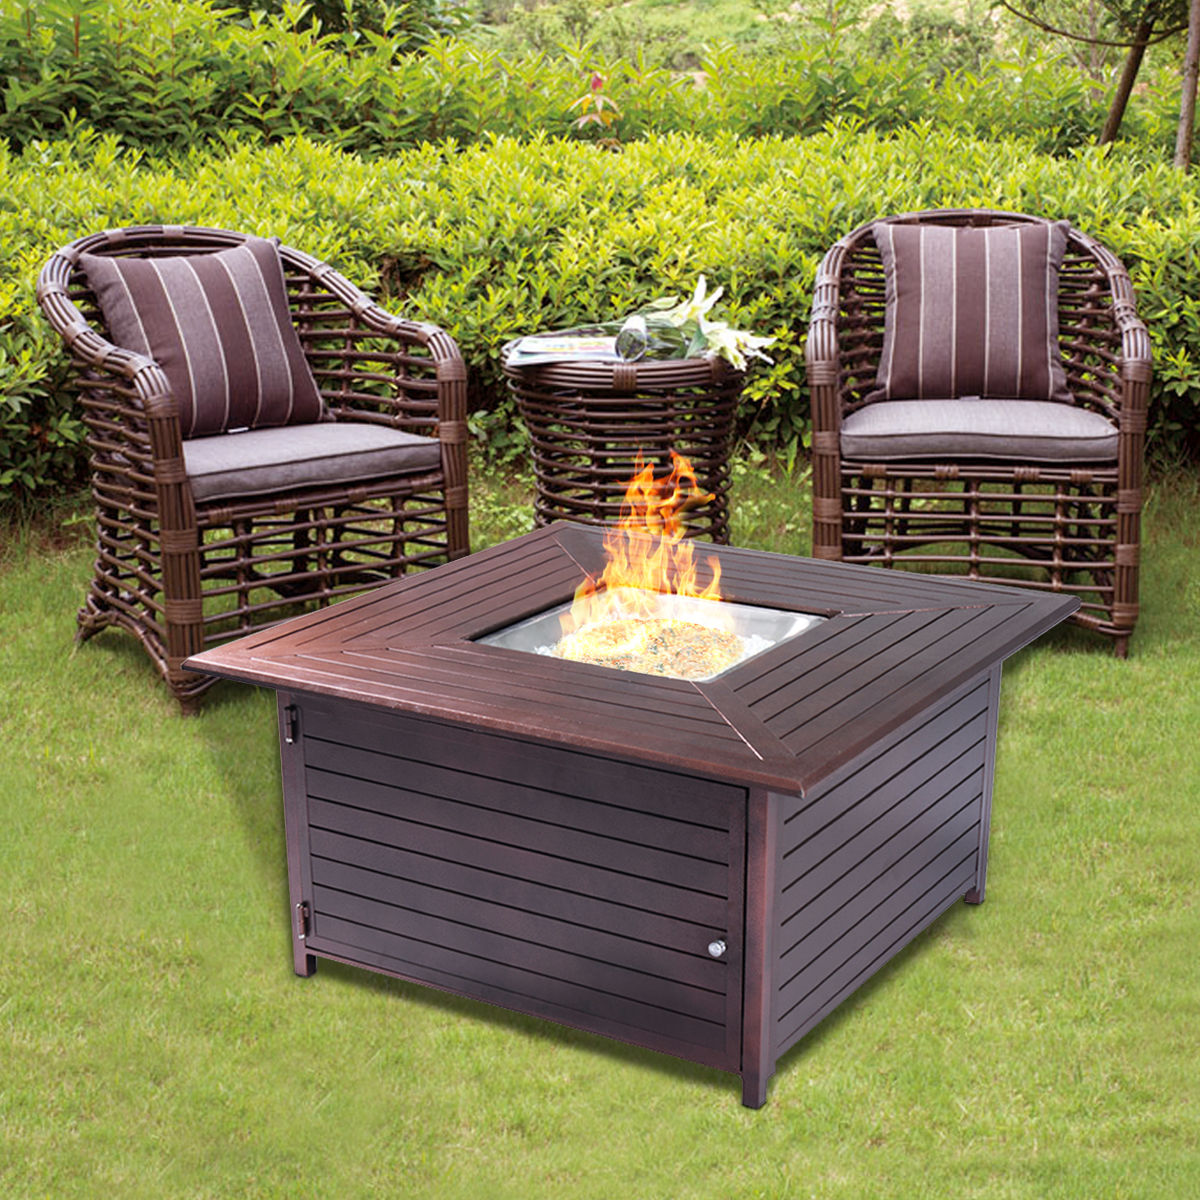 Costway 40000BTU Aluminum Propane Gas Outdoor Fire Pit Ta...